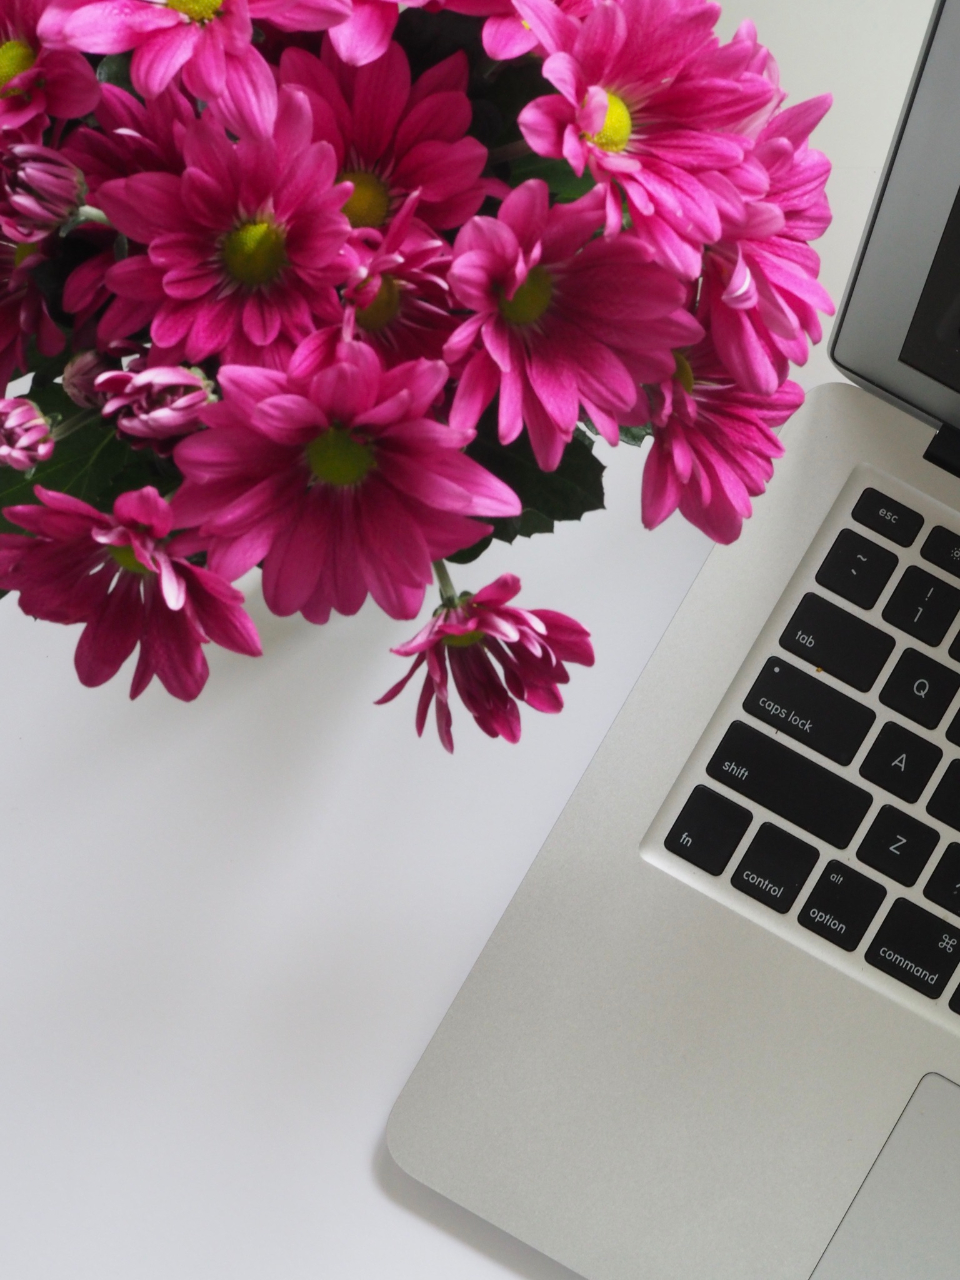 mac pink flowers white table minimal apple keyboard device button computer laptop macbook technology